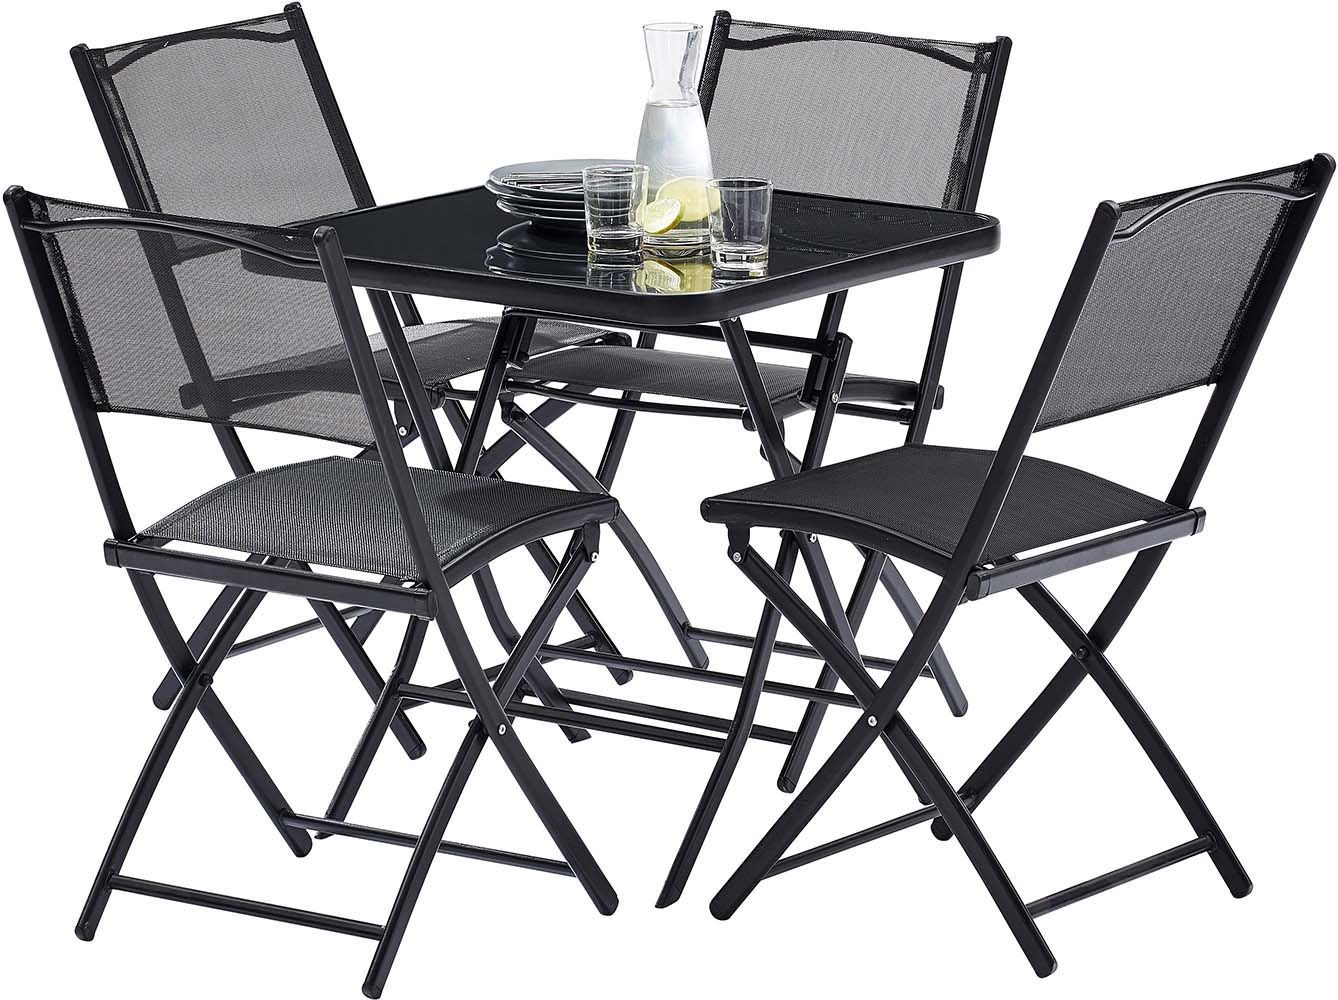 table terasse 4 personnes avec chaises pliantes aciro. Black Bedroom Furniture Sets. Home Design Ideas